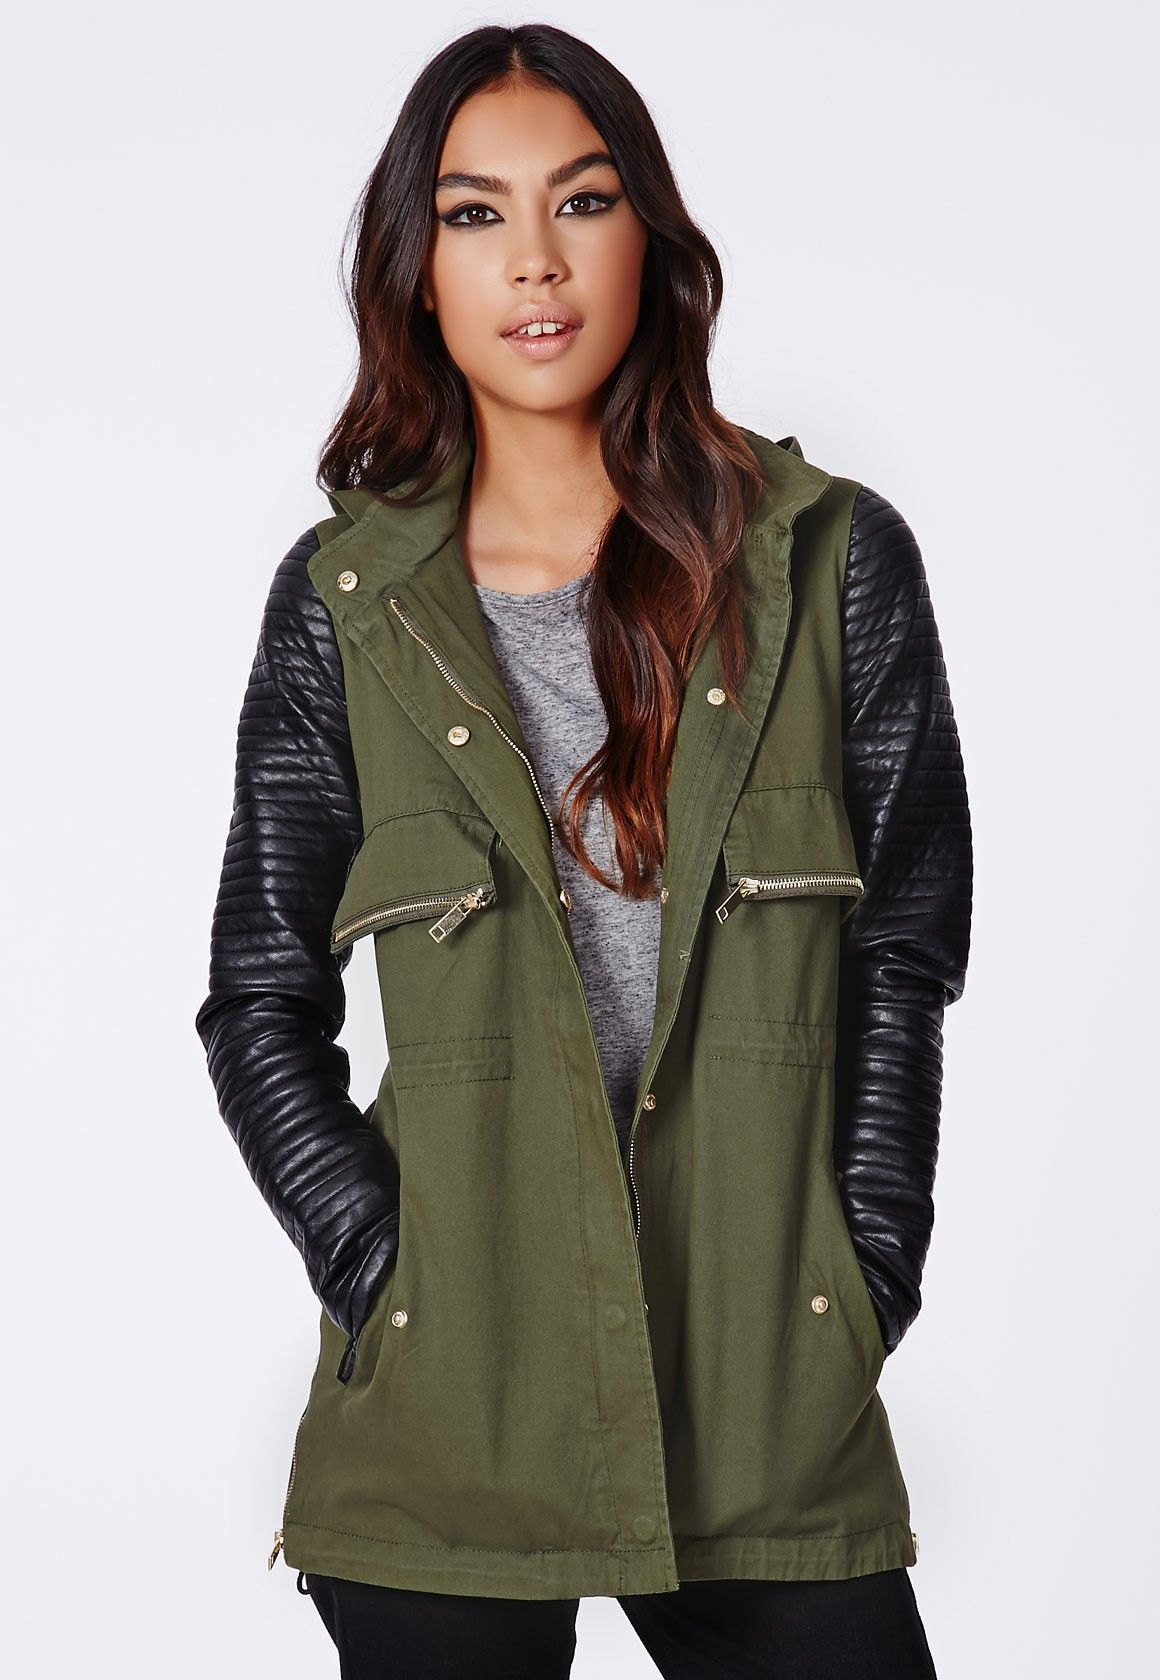 e7e413cdecf3 Yonia Faux Leather Sleeve Utility Jacket Khaki - Coats And Jackets -  Missguided